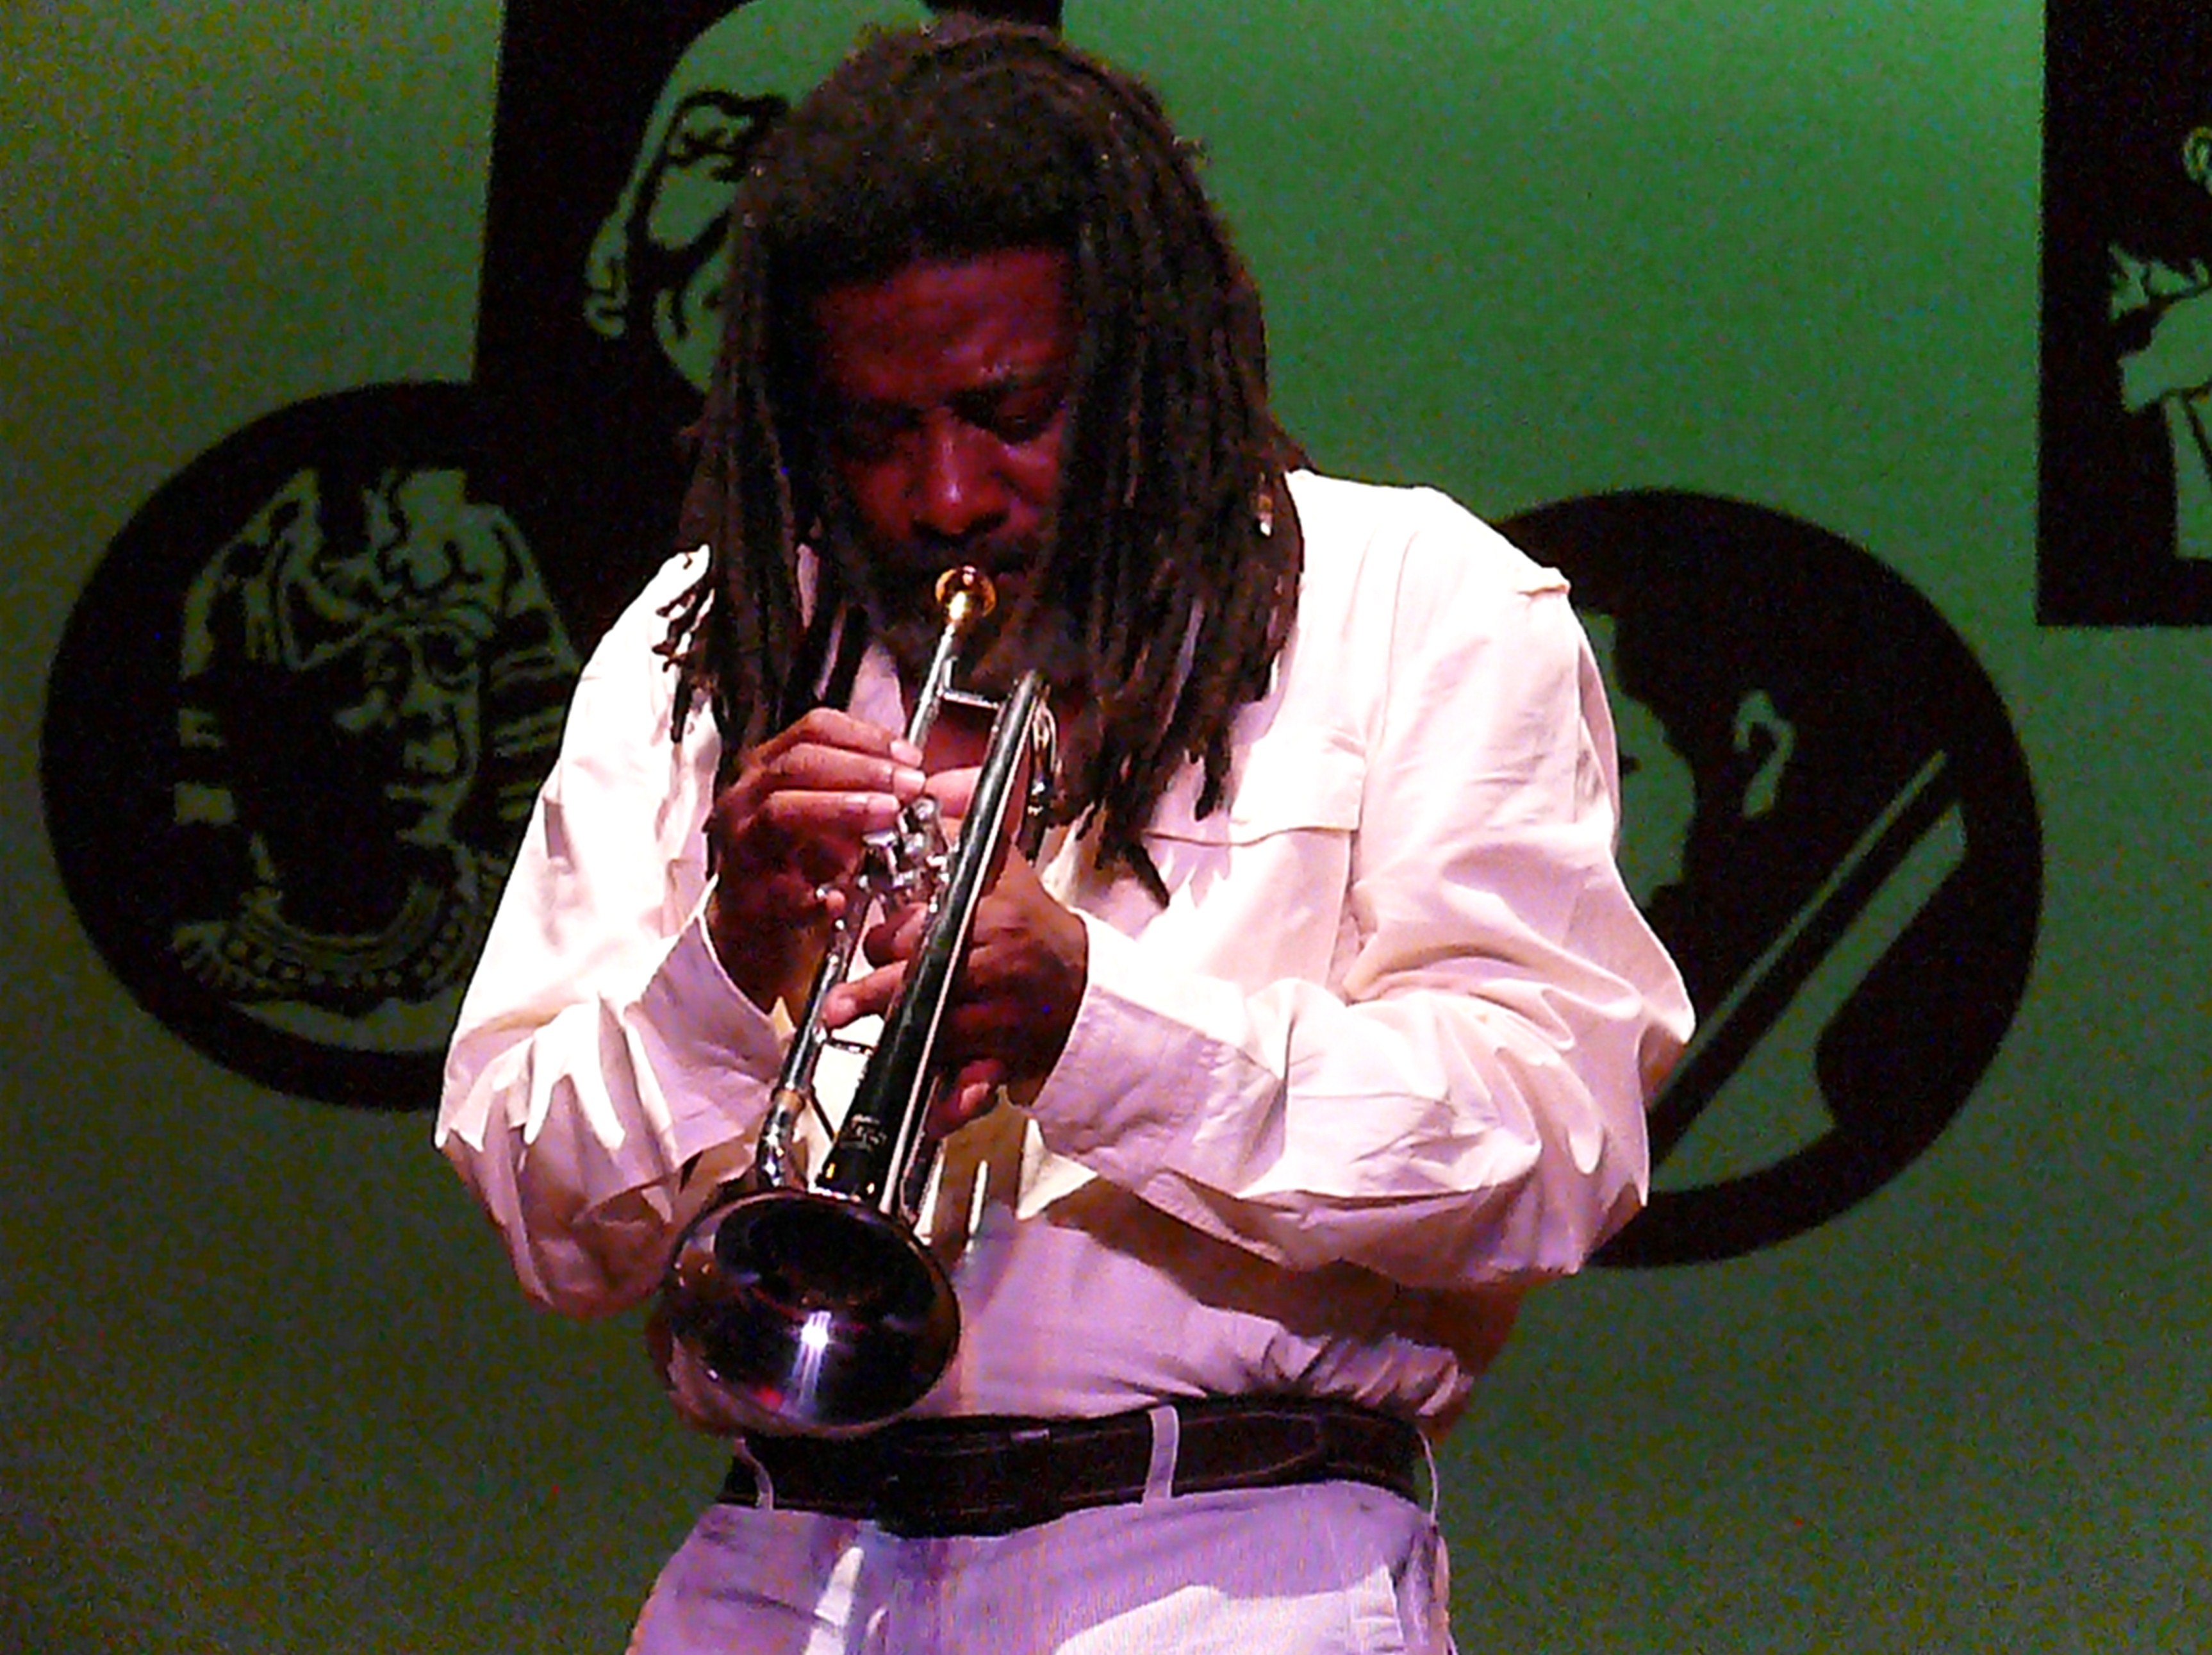 Wadada Leo Smith at the 2010 Vision Festival in New York